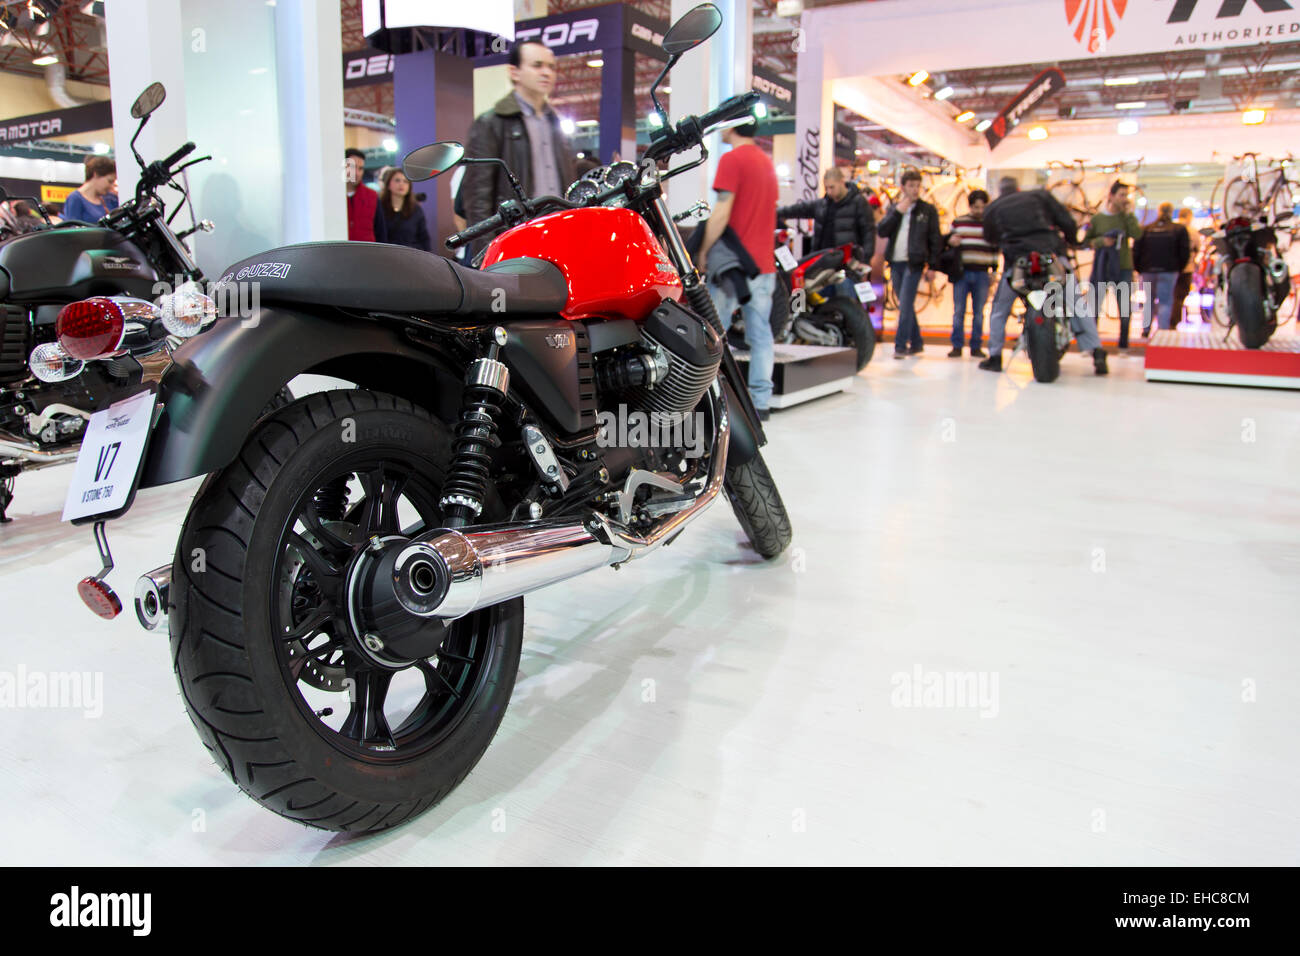 Istanbul, Turkey - February 27, 2015: Motorcycles on display at Eurasia motorbike expo 2015, CNR Expo - Stock Image